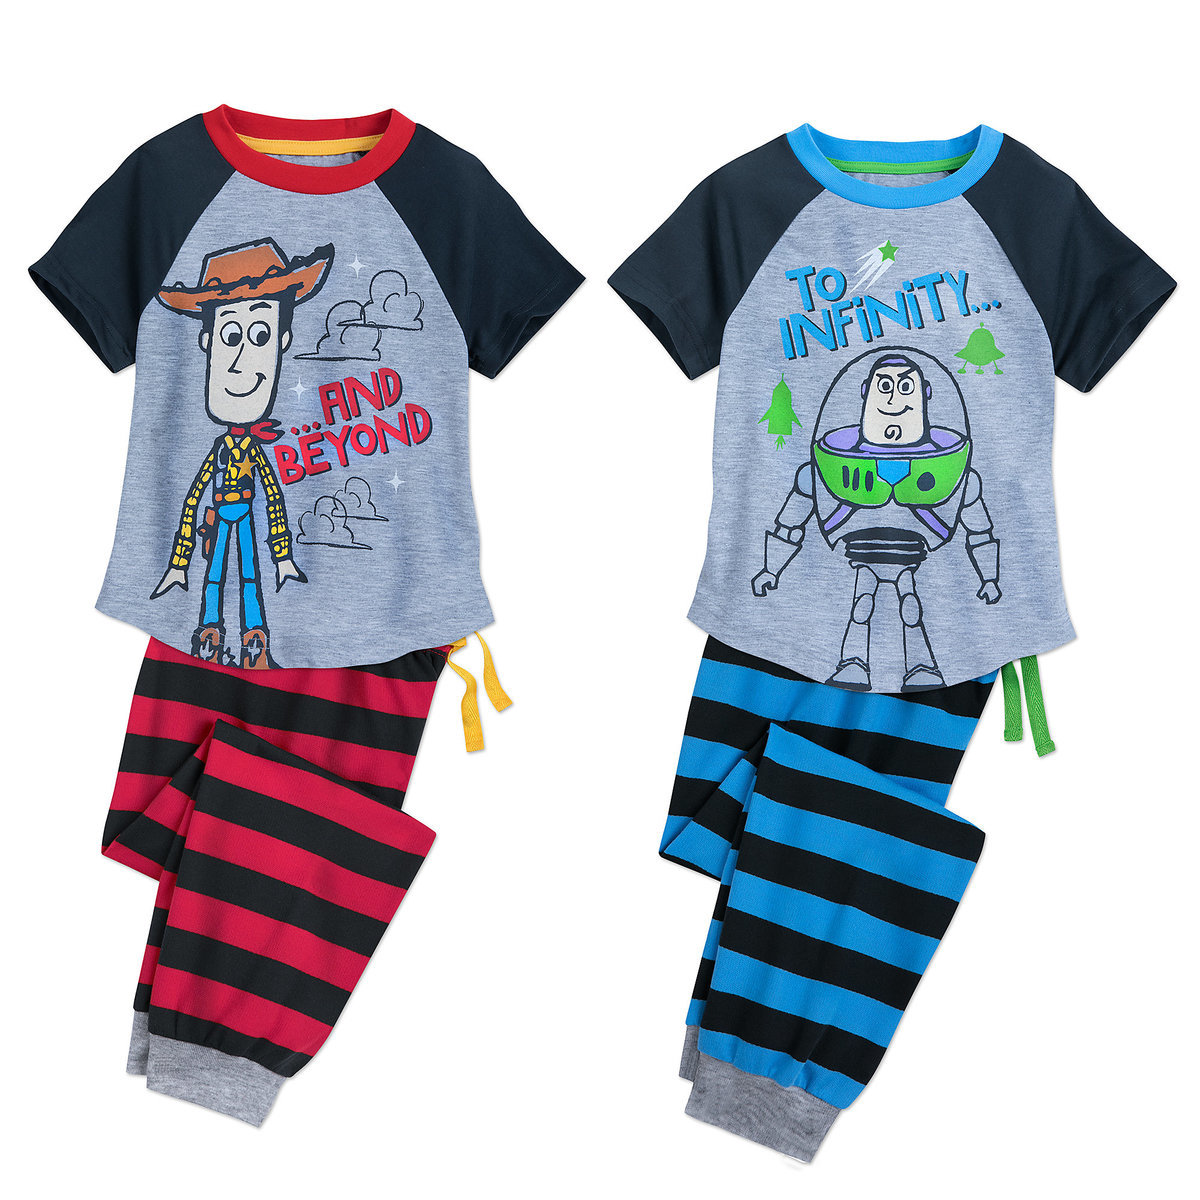 67dbd132d Product Image of Toy Story Best Friends PJ Sets for Kids - 2-Pack #